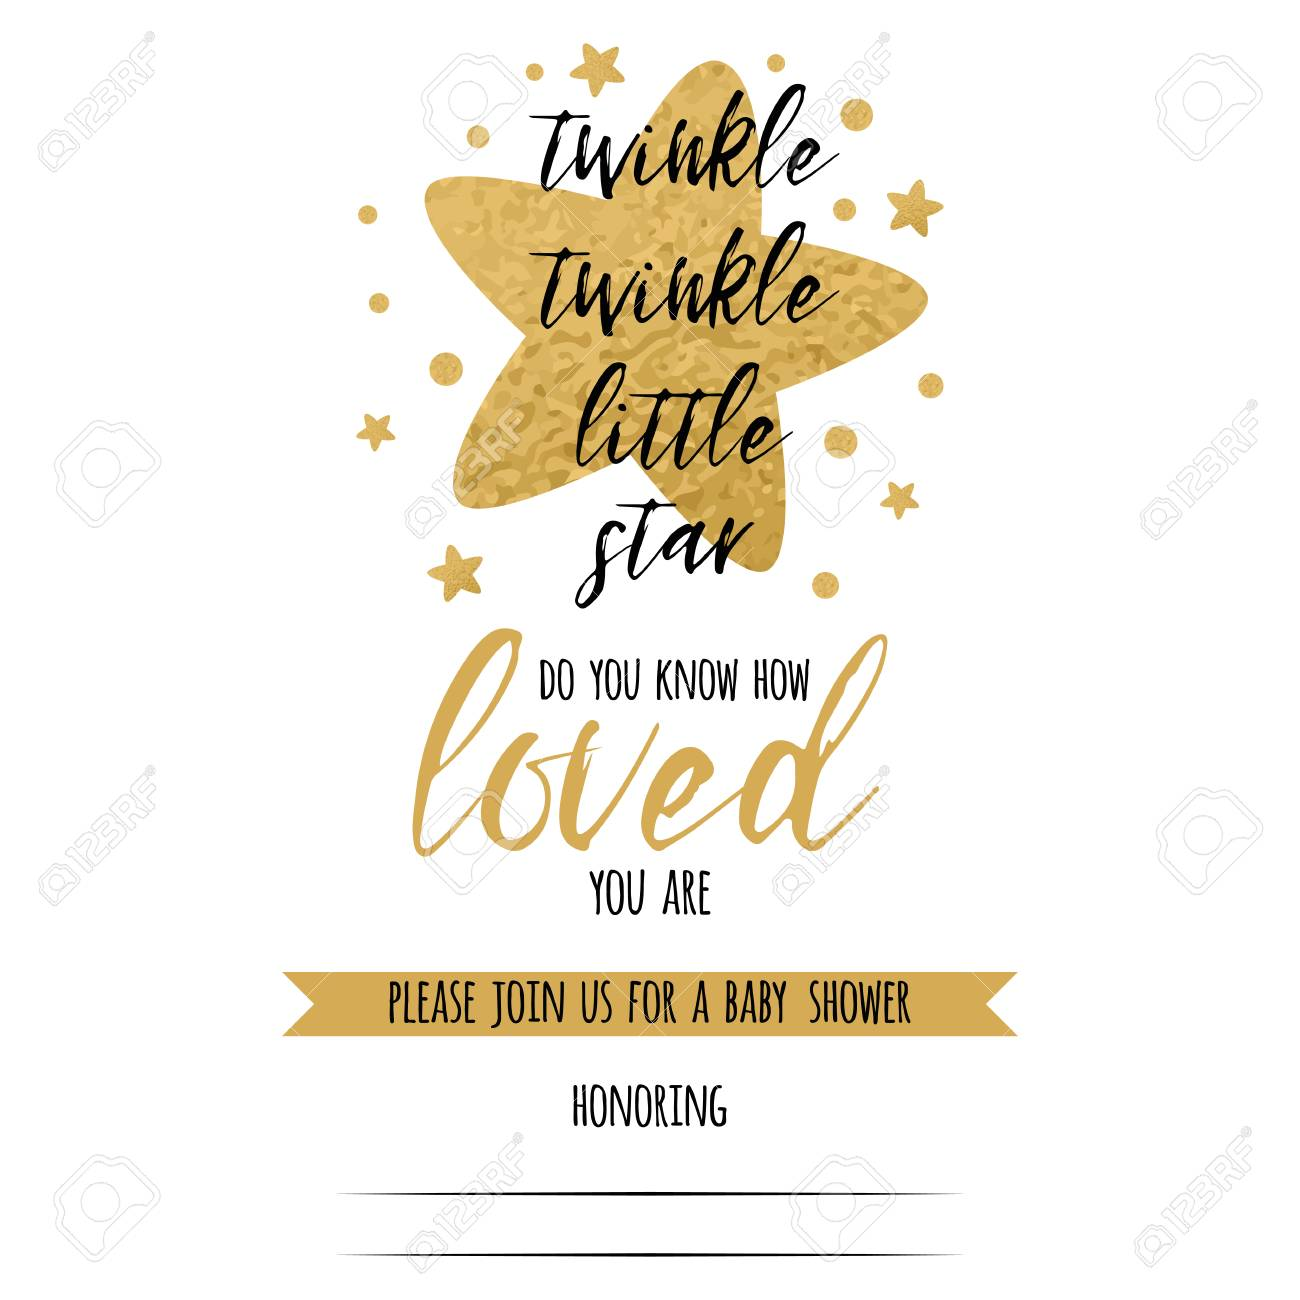 twinkle twinkle little star text with cute golden stars for girl